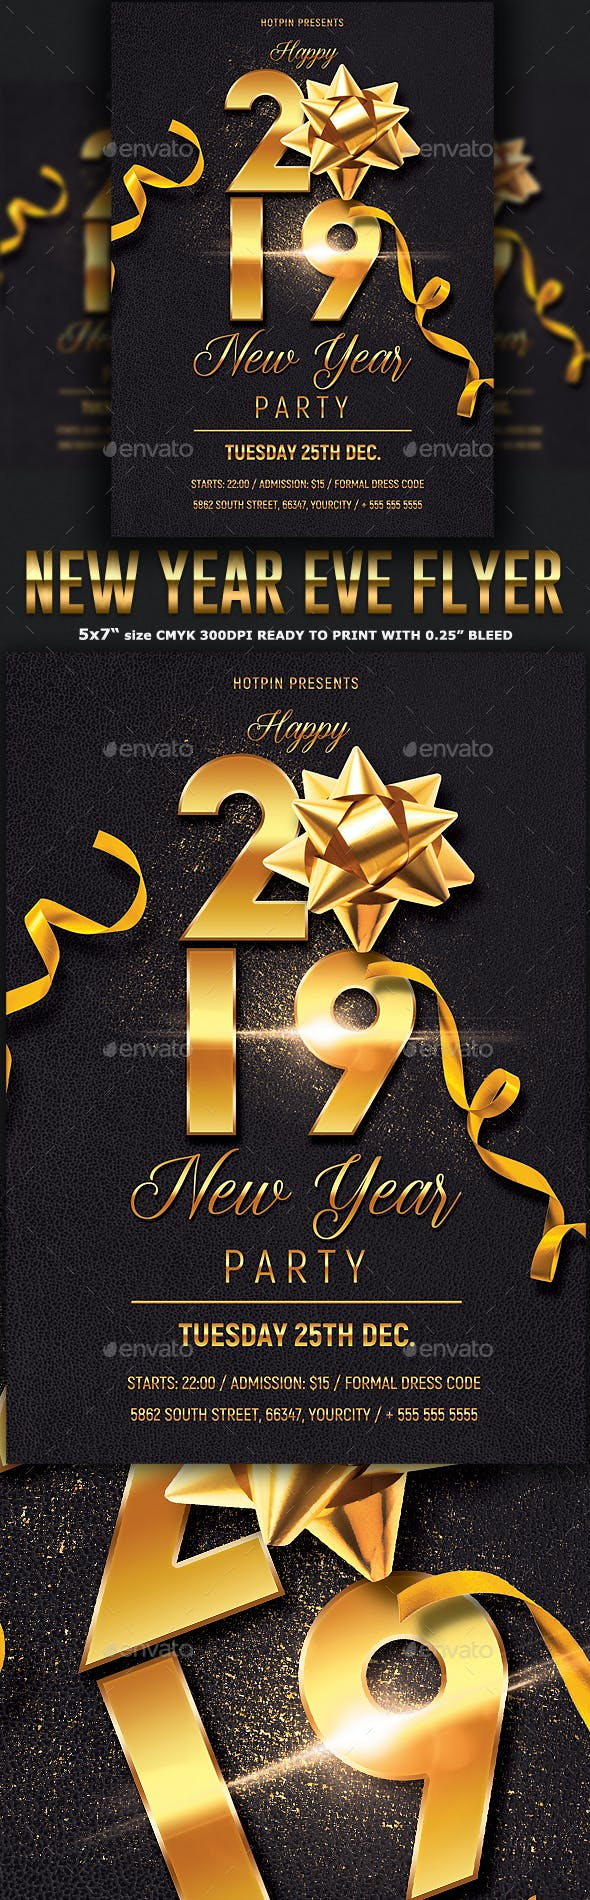 new year party flyer template clubs parties events